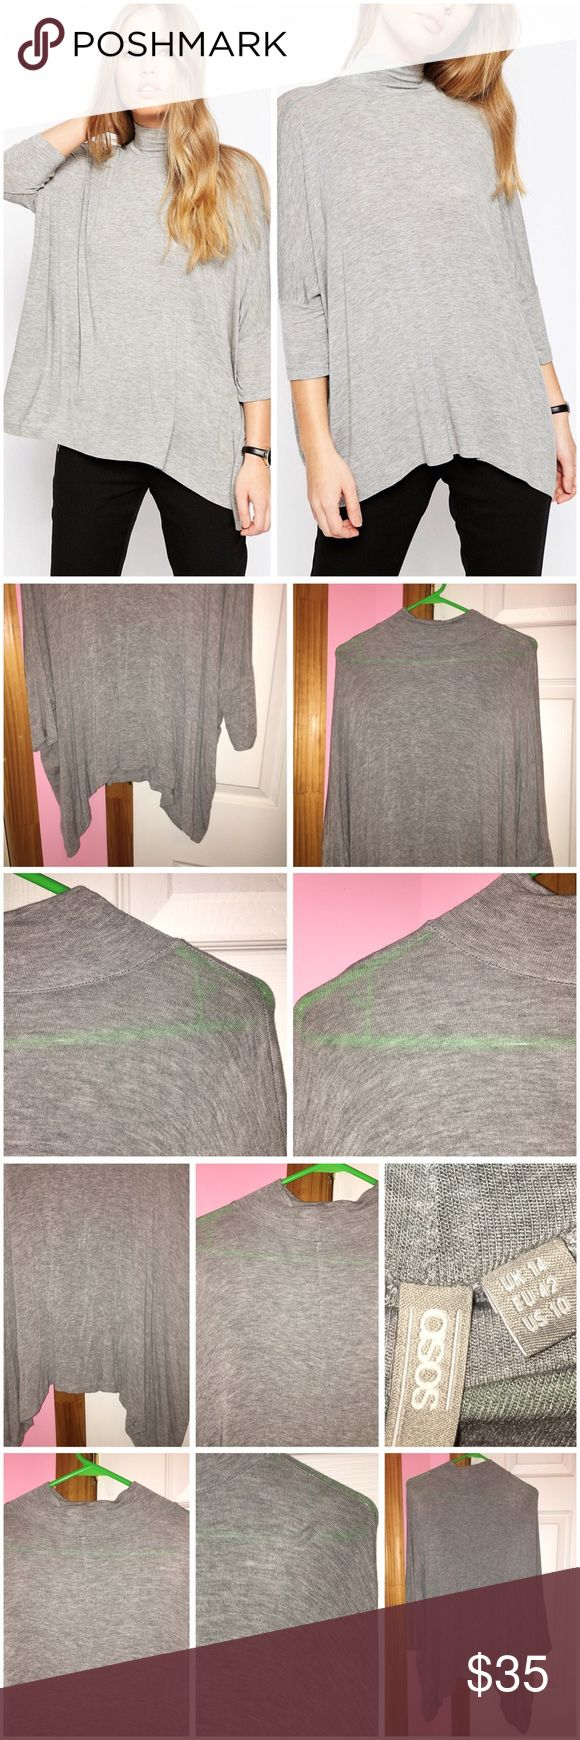 Asymmetric Hem High Neck Top Only tried on; has been washed. Color is gray marl. Turtle neckline. Asymmetric curved hemline. Runs true to size. Stock photos from ASOS. ❌NO TRADES❌ ASOS Tops